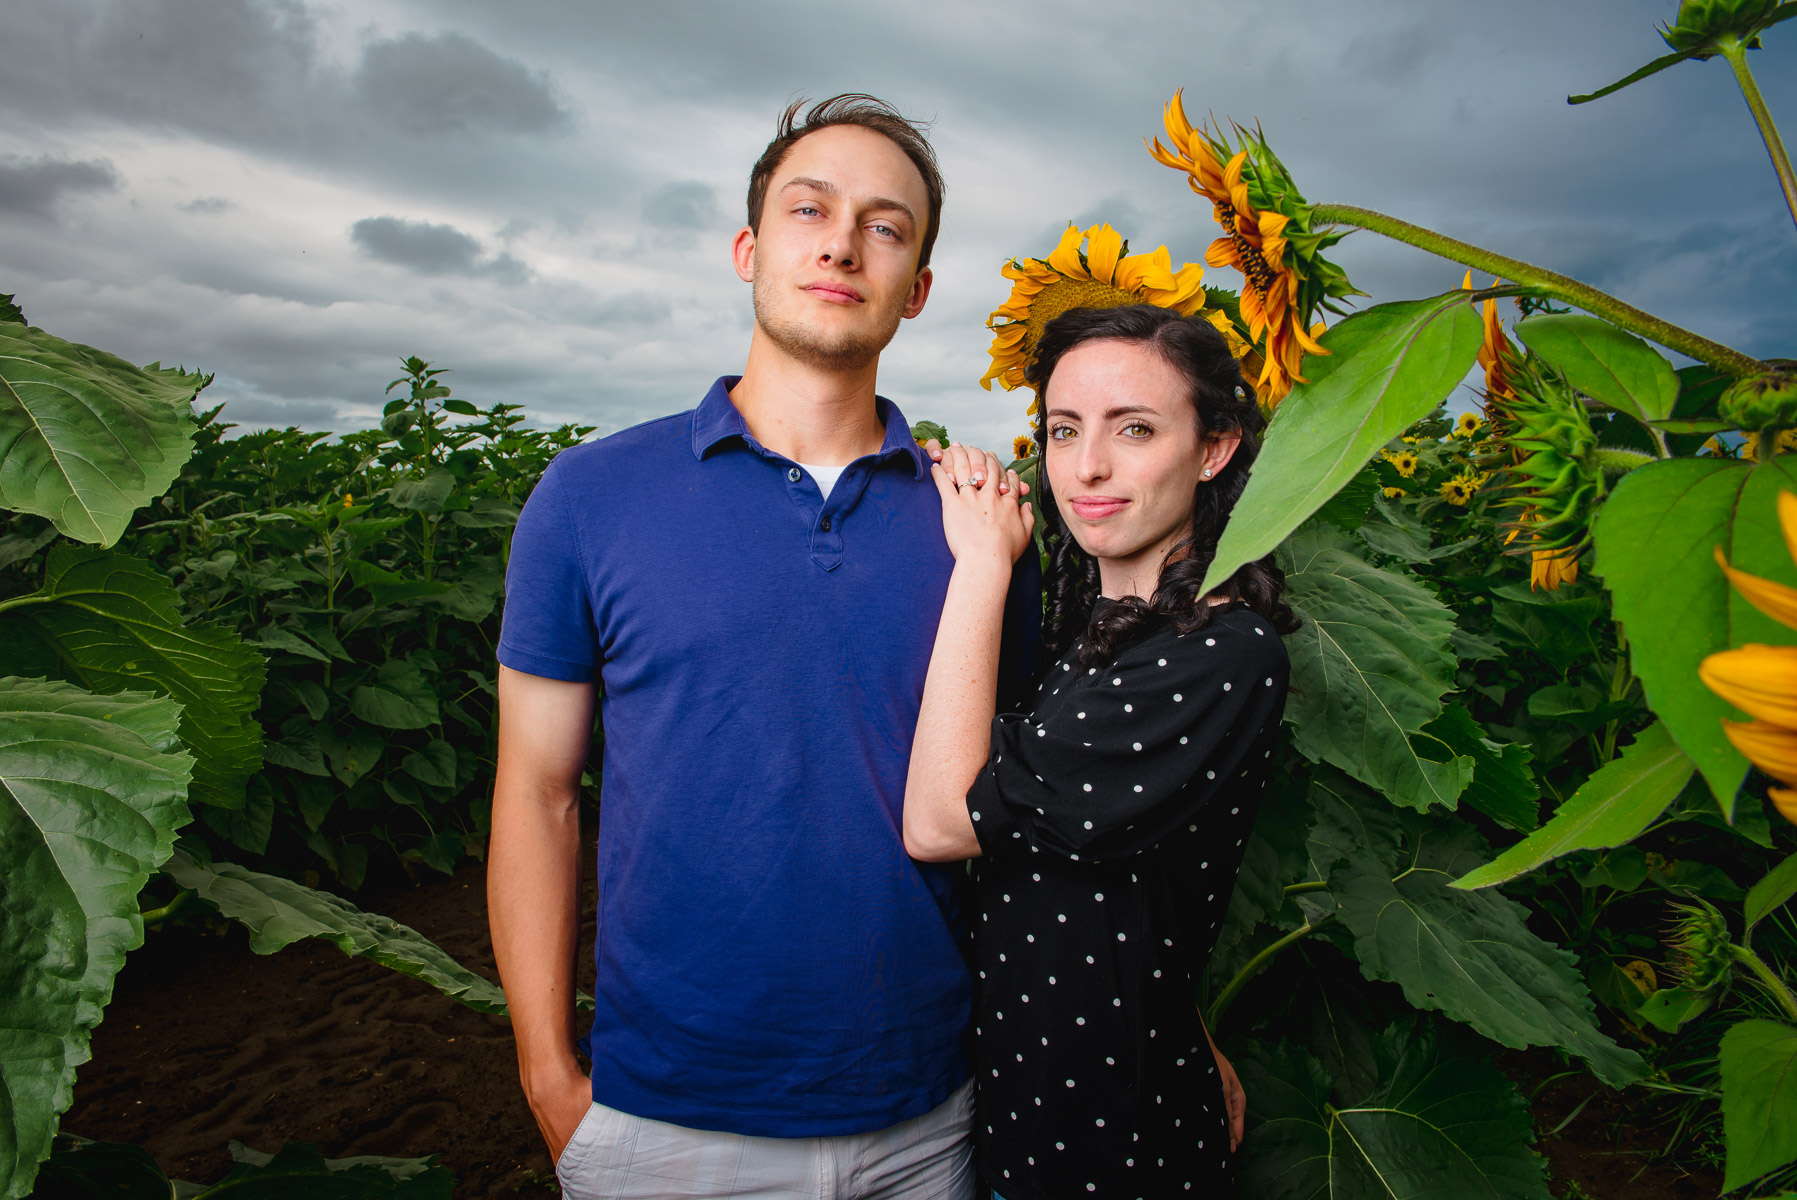 Sunflower farm engagement shoot _ Johnson's Locust Hall Farm _ Jobstown NJ-11.jpg